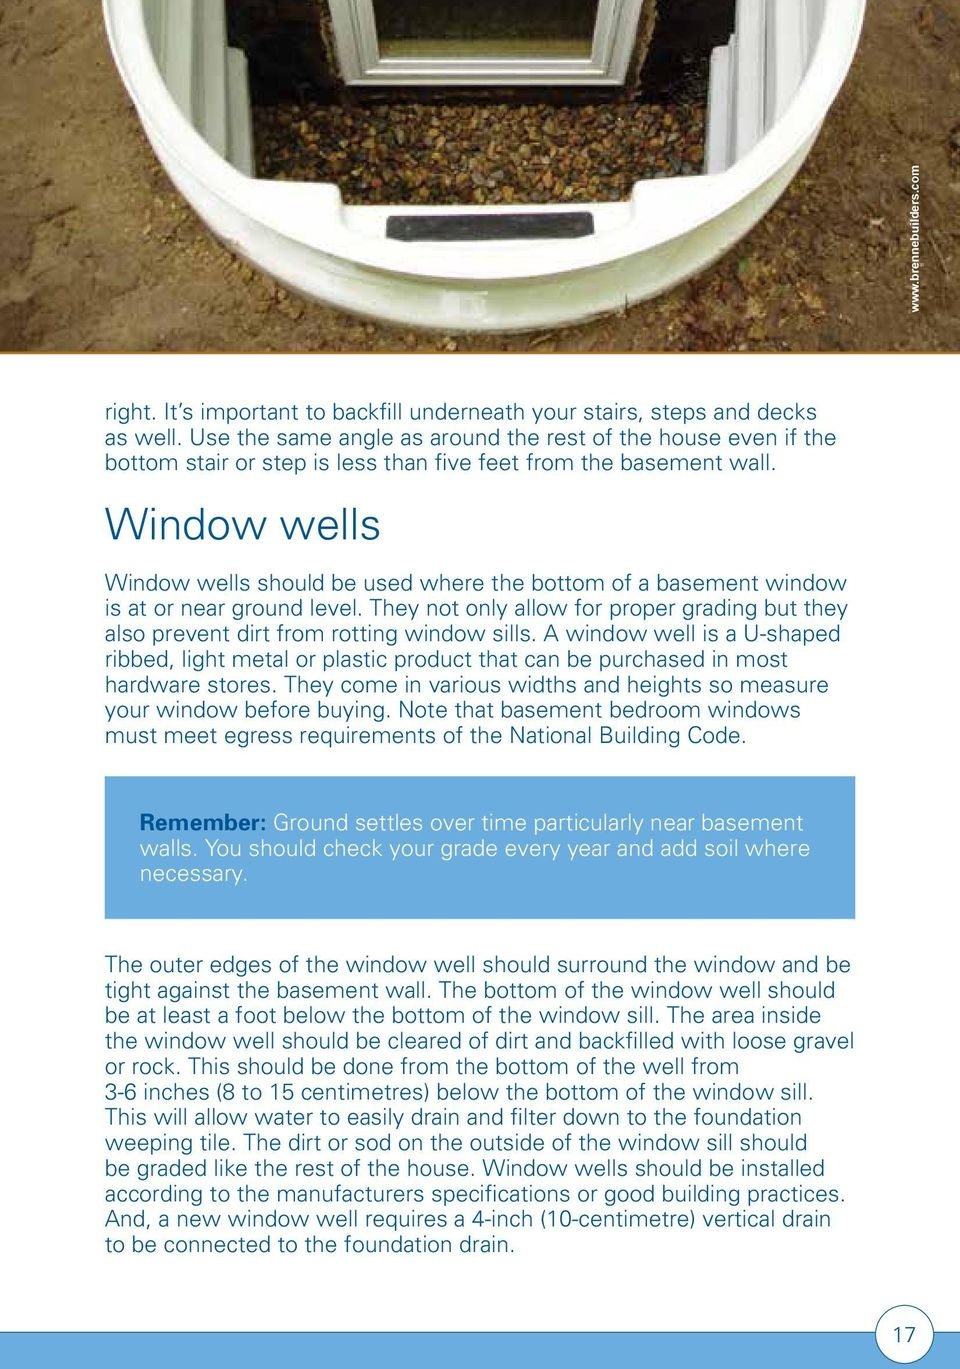 Window wells Window wells should be used where the bottom of a basement window is at or near ground level. They not only allow for proper grading but they also prevent dirt from rotting window sills.